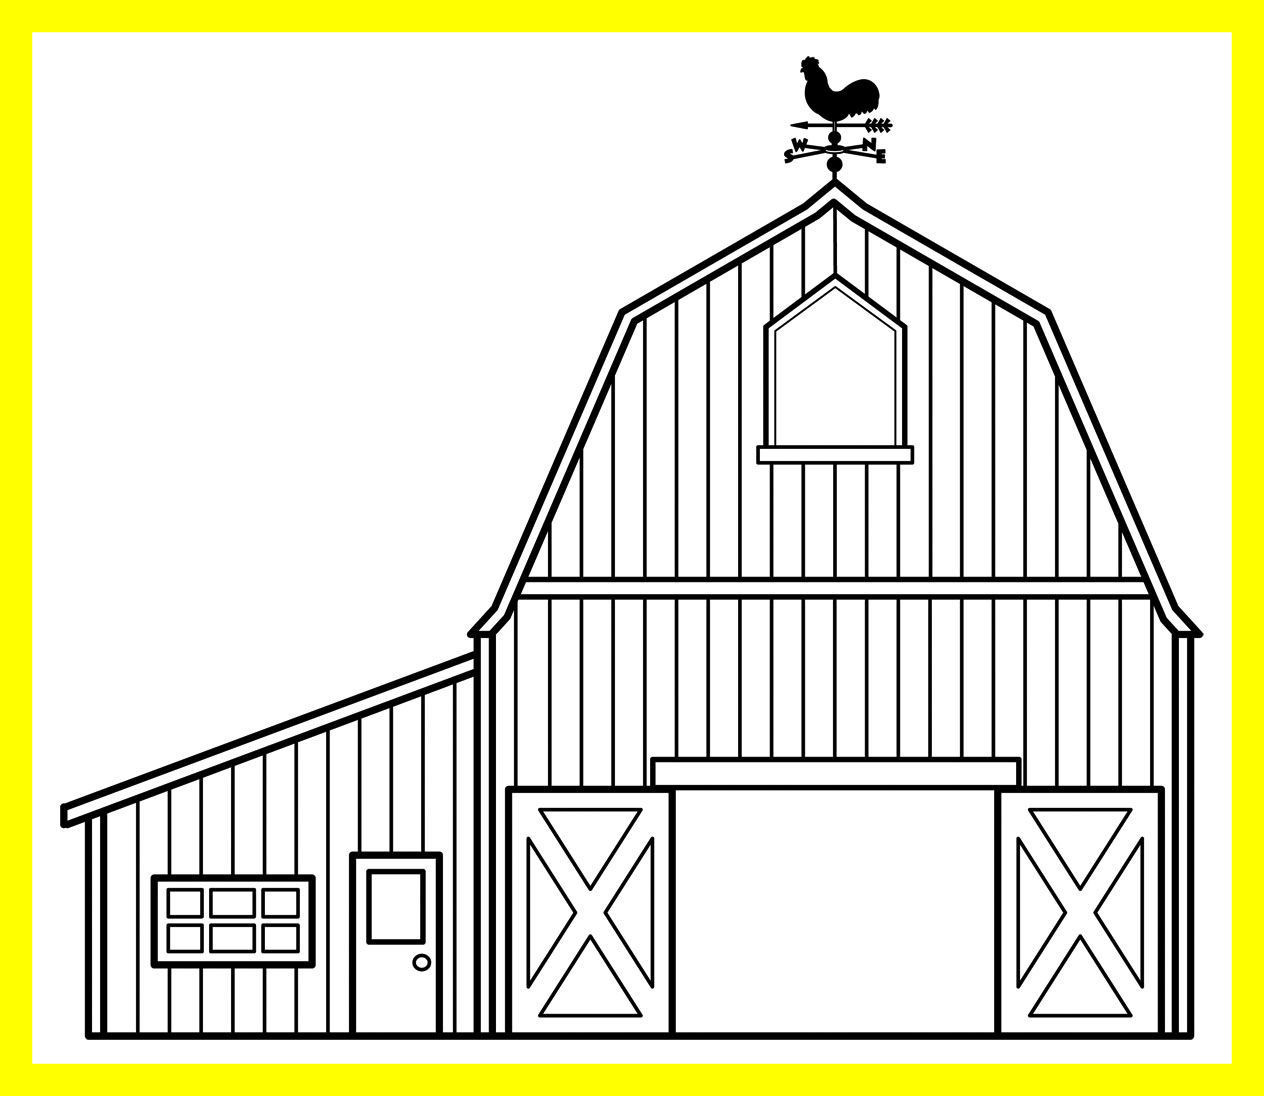 Barn clipart coloring page. Unbelievable horse image grig